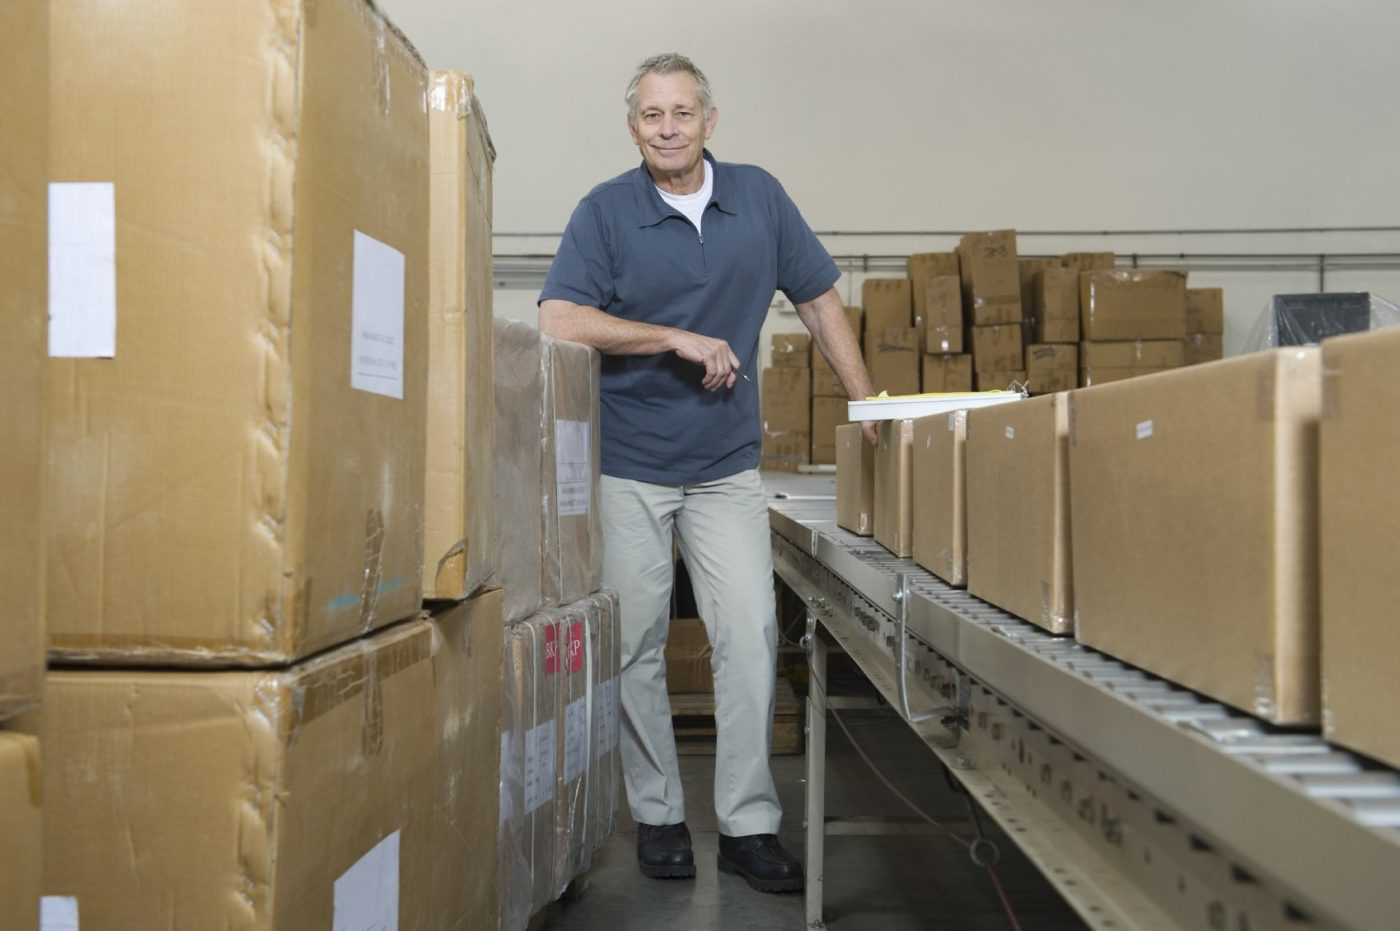 Full length portrait of a man standing by conveyor belt and boxes in distribution warehouse